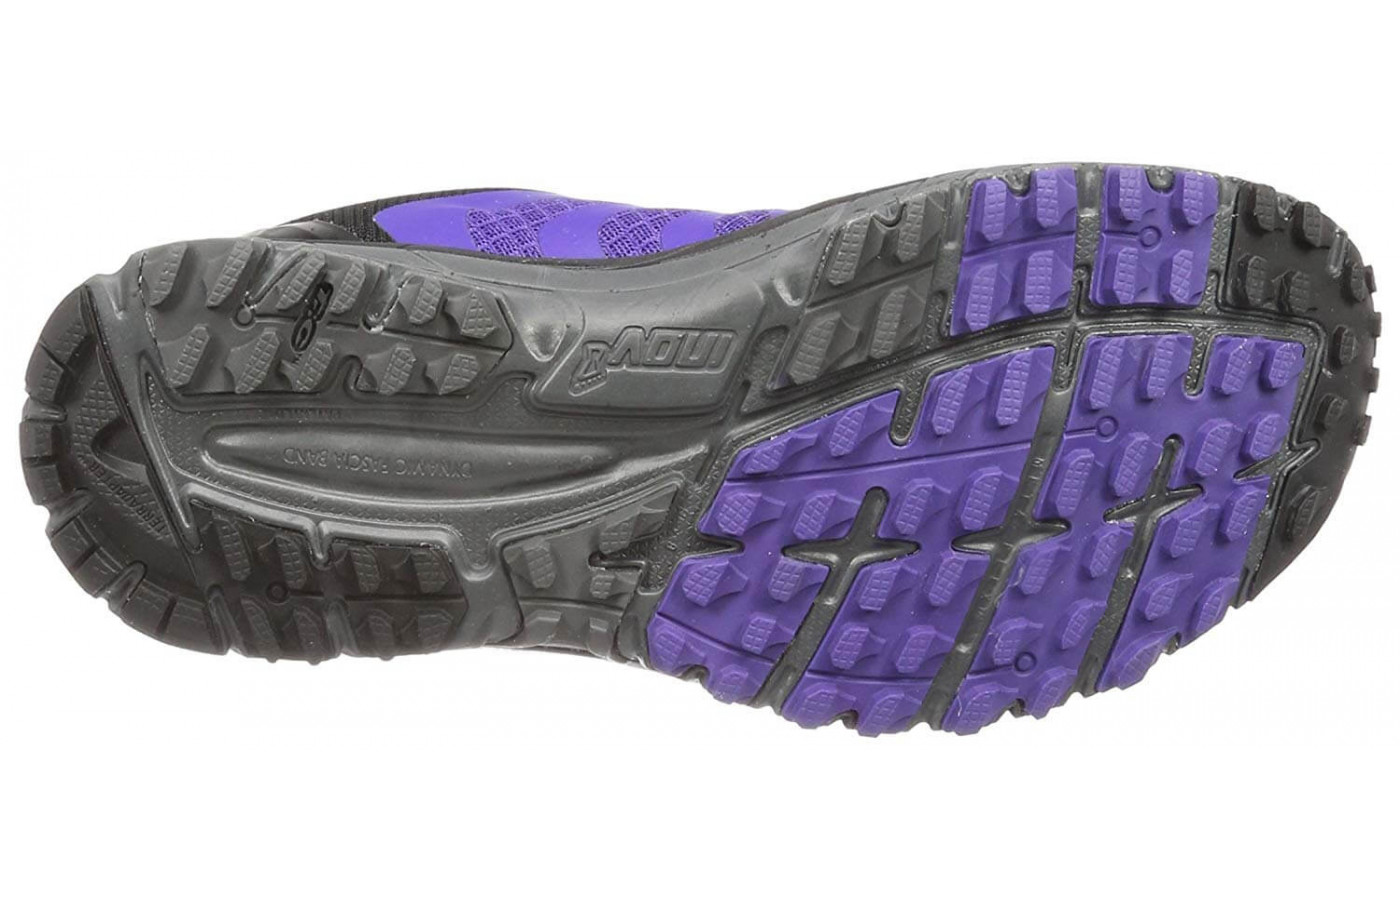 Its Tri-C outsole enables the Parkclaw 275 to maintain solid traction even in wet conditions